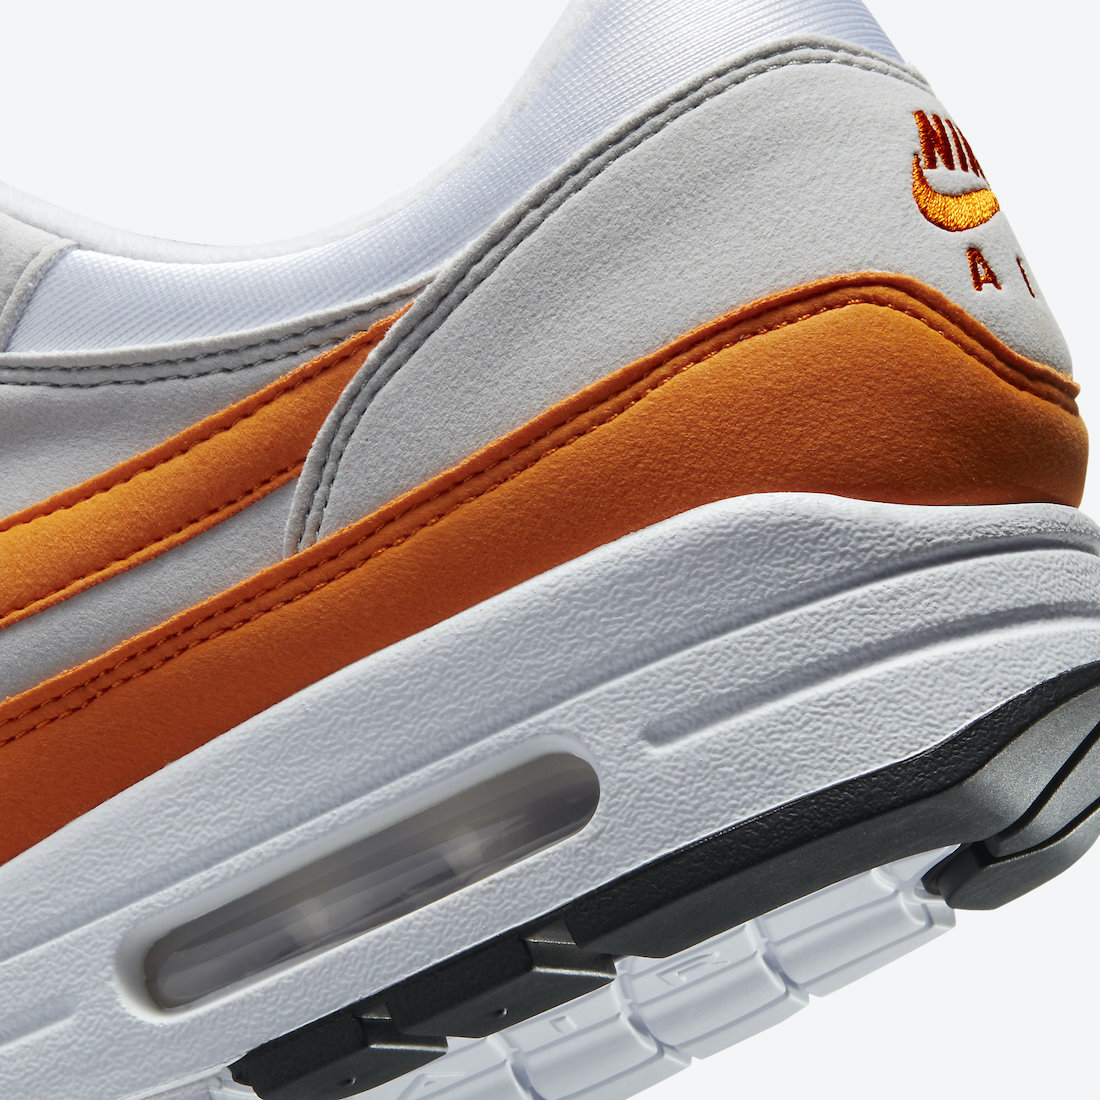 Nike-Air-Max-1-Magma-Orange-DC1454-101-Release-Date-7